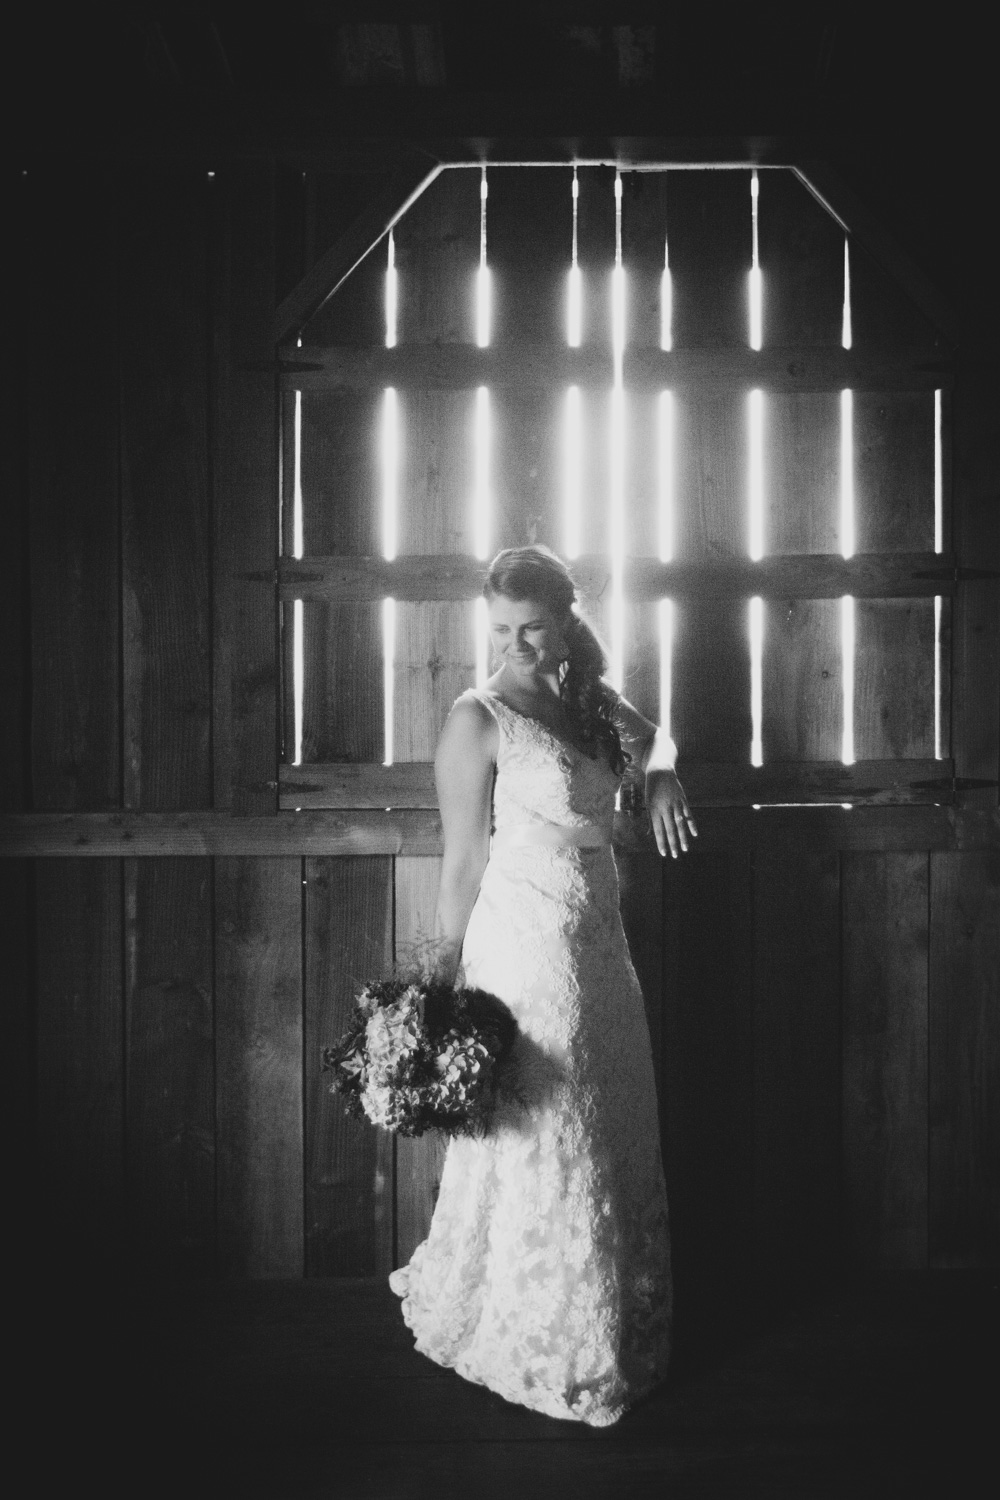 Dallas Oregon Wedding Photography Focal Point Studios-124.jpg